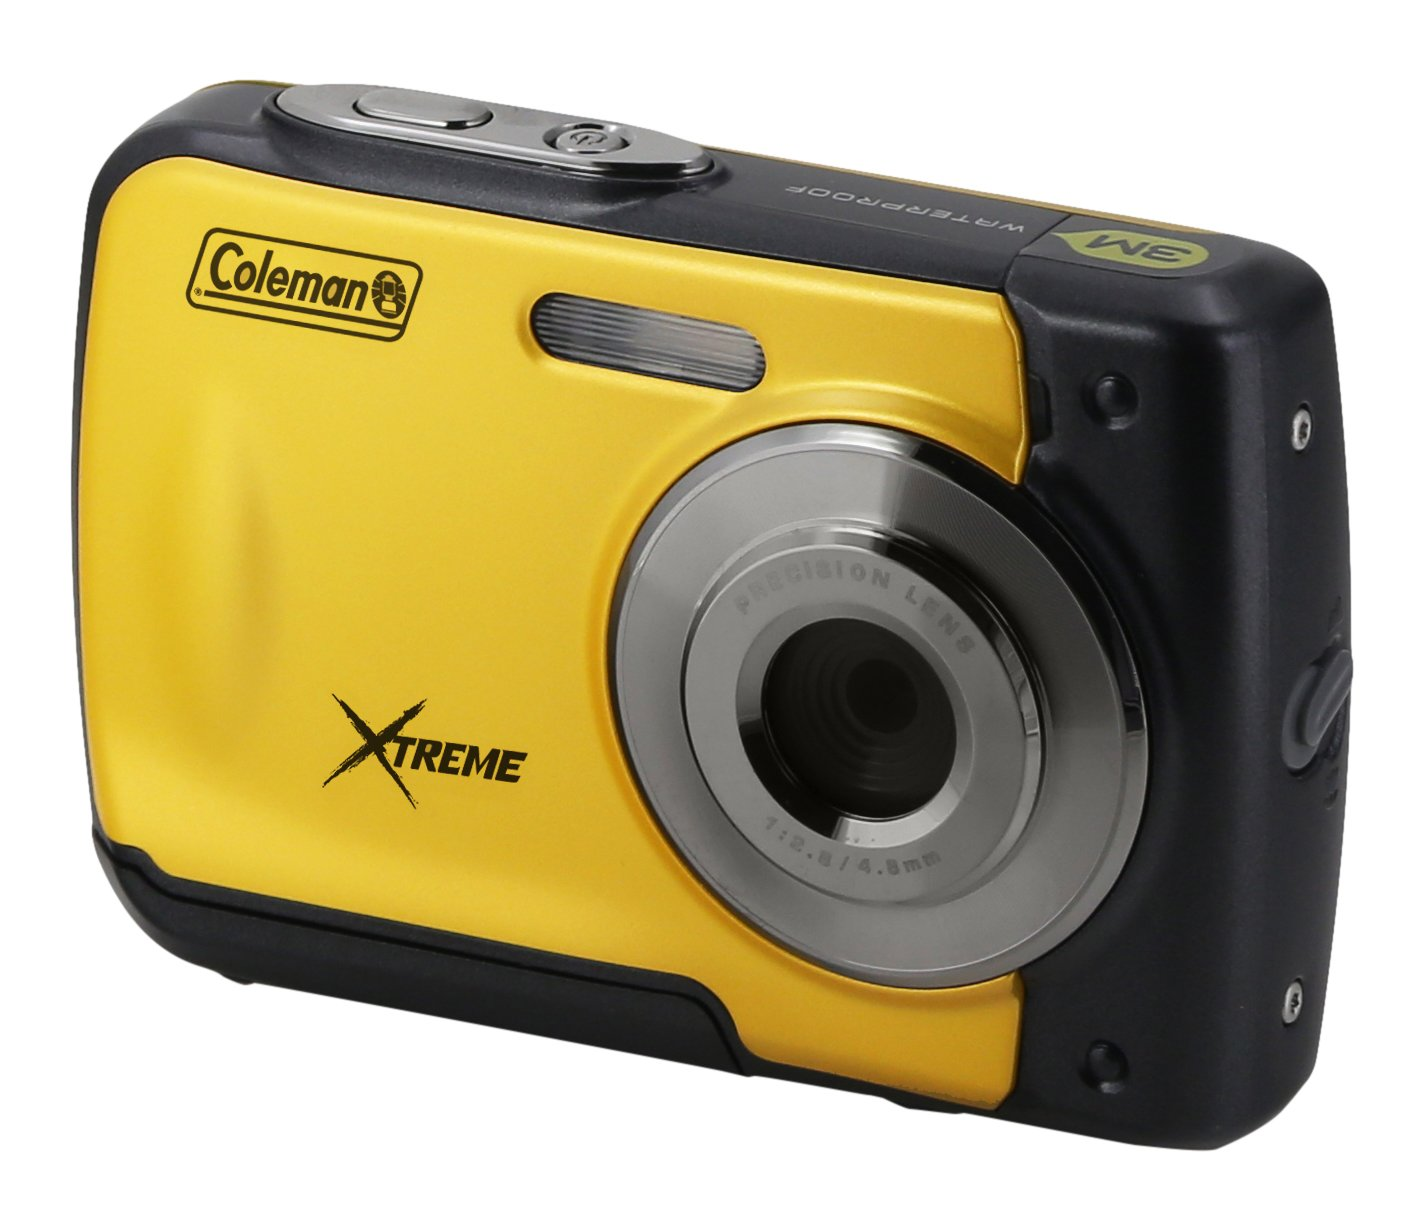 """Coleman Xtreme 18.0 MP HD Underwater Digital & Video Camera (Waterproof to 10 ft.), 2.5"""", Yellow (C20WP-Y)"""